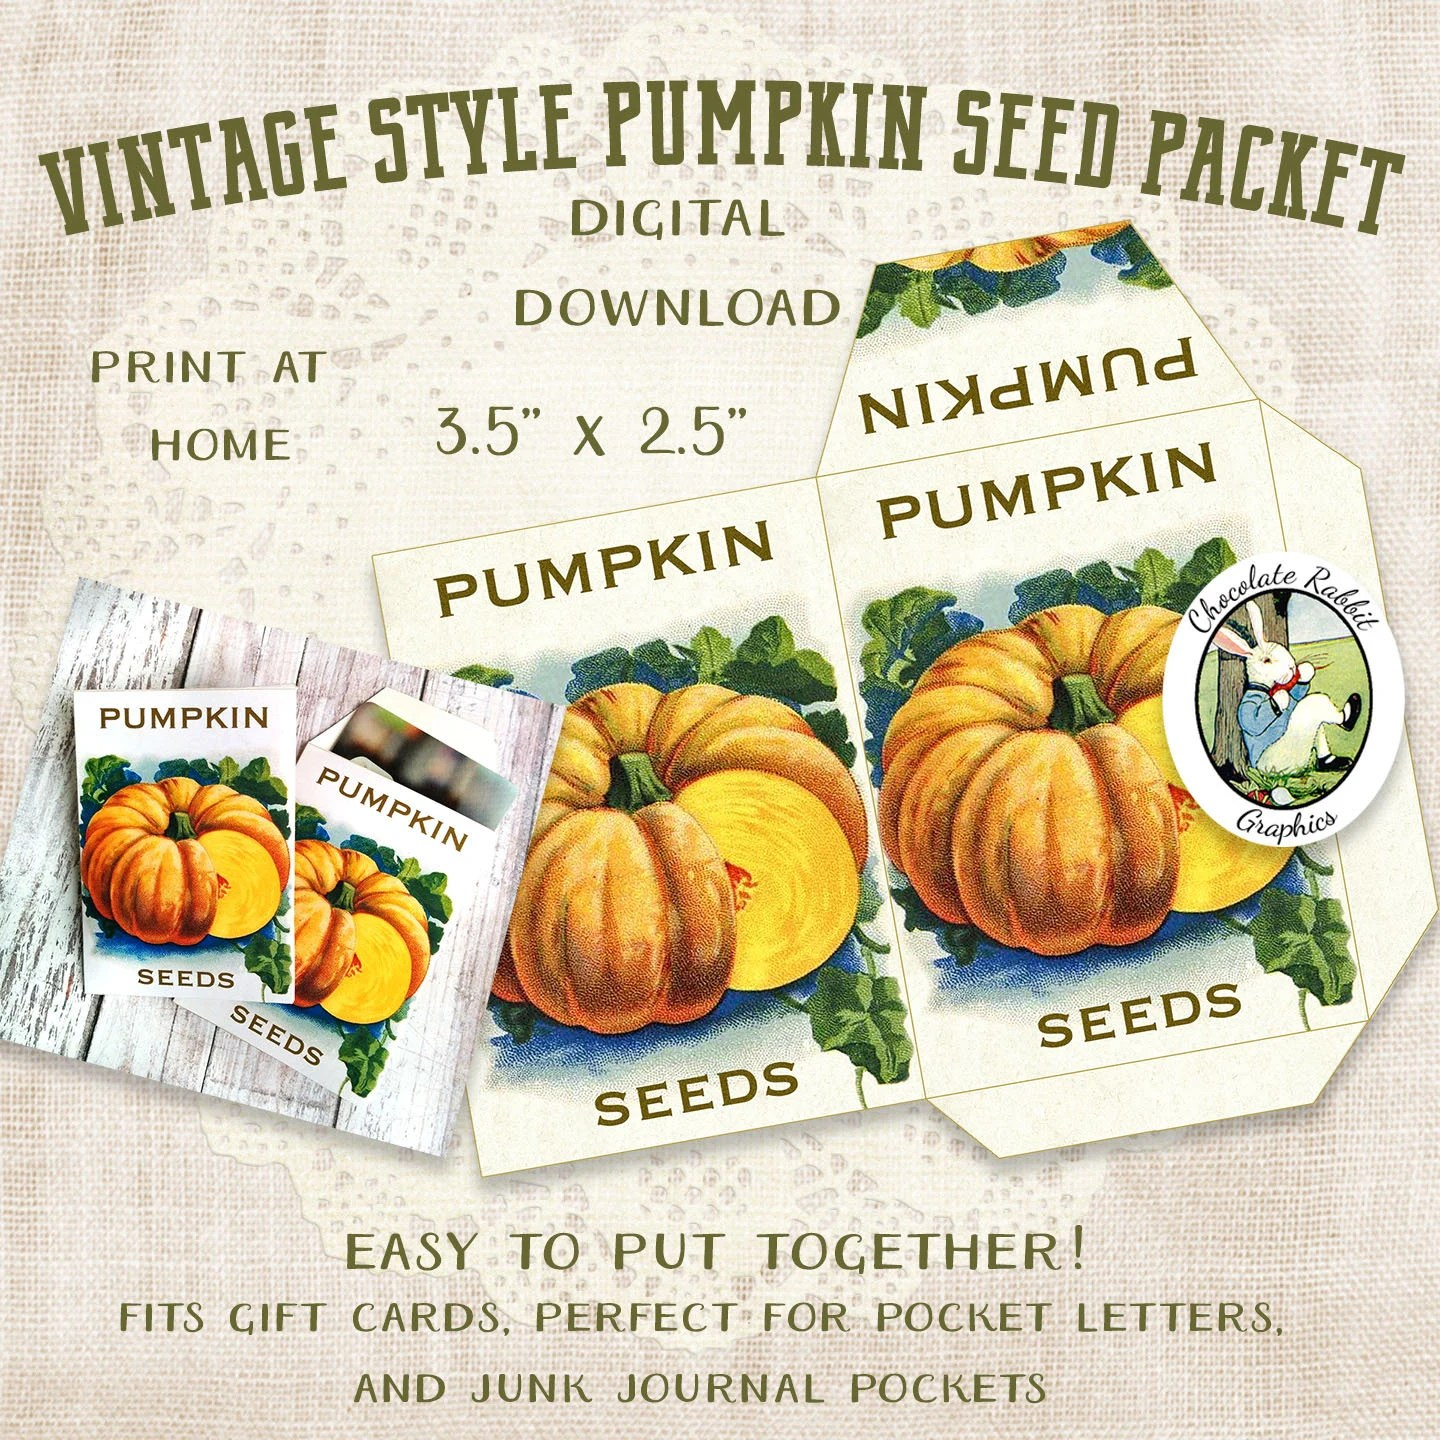 Vintage Pumpkin Seed Packet Digital Download Printable Etsy